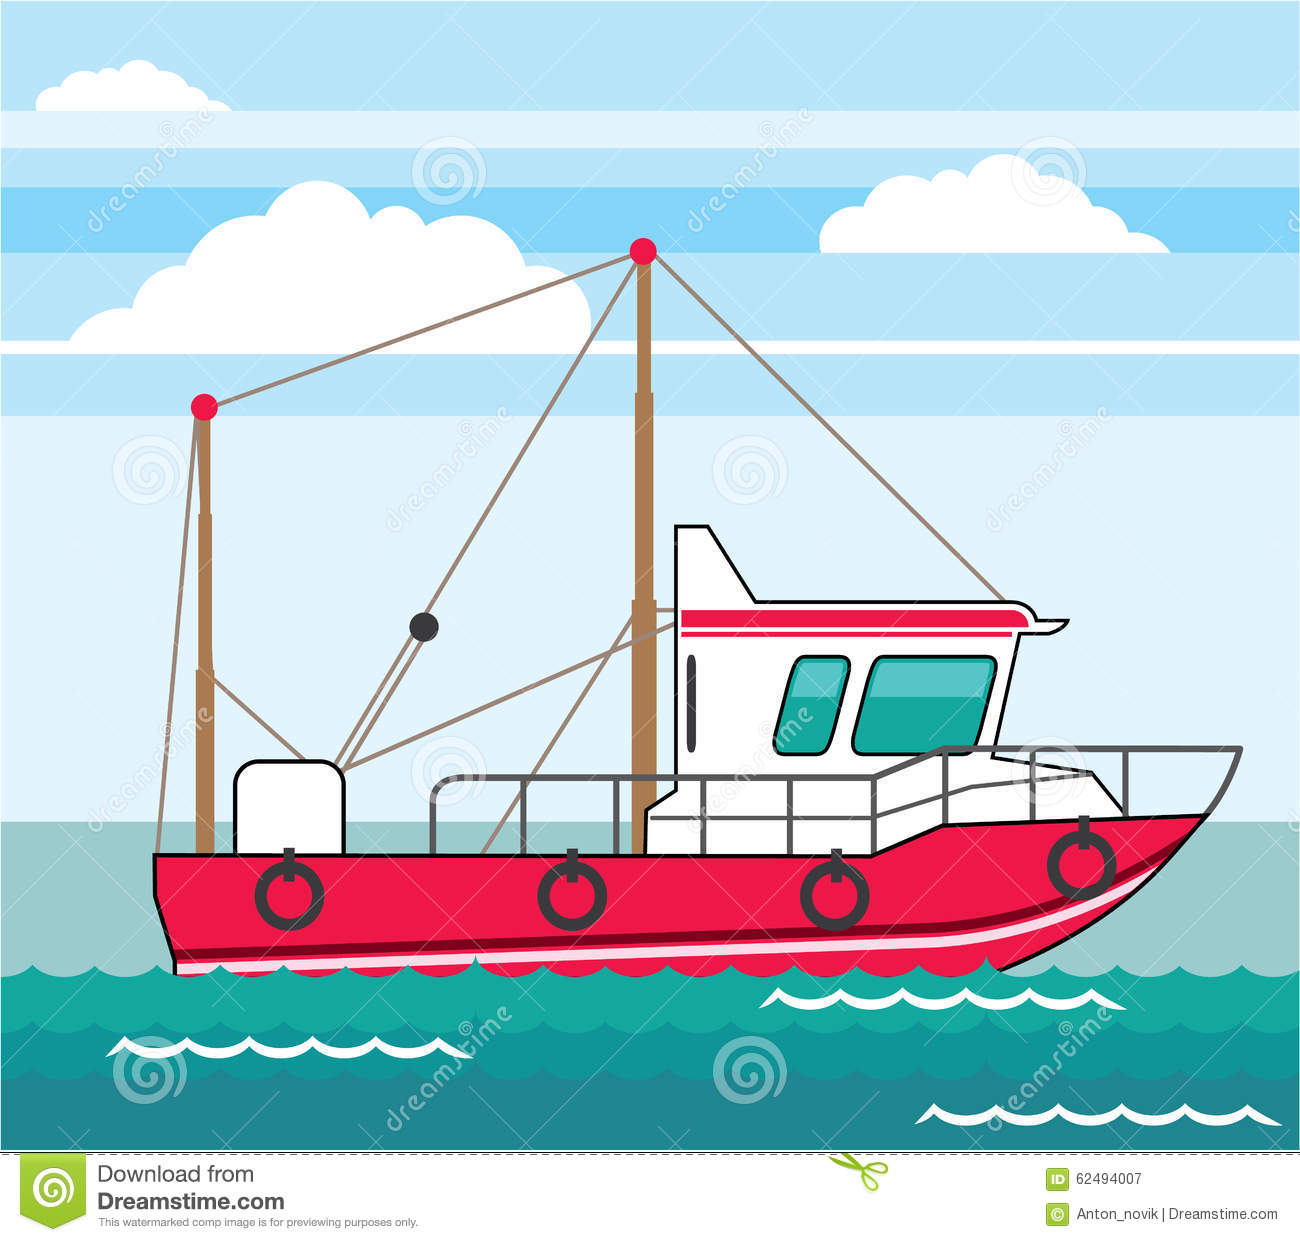 Fishing boat clip art